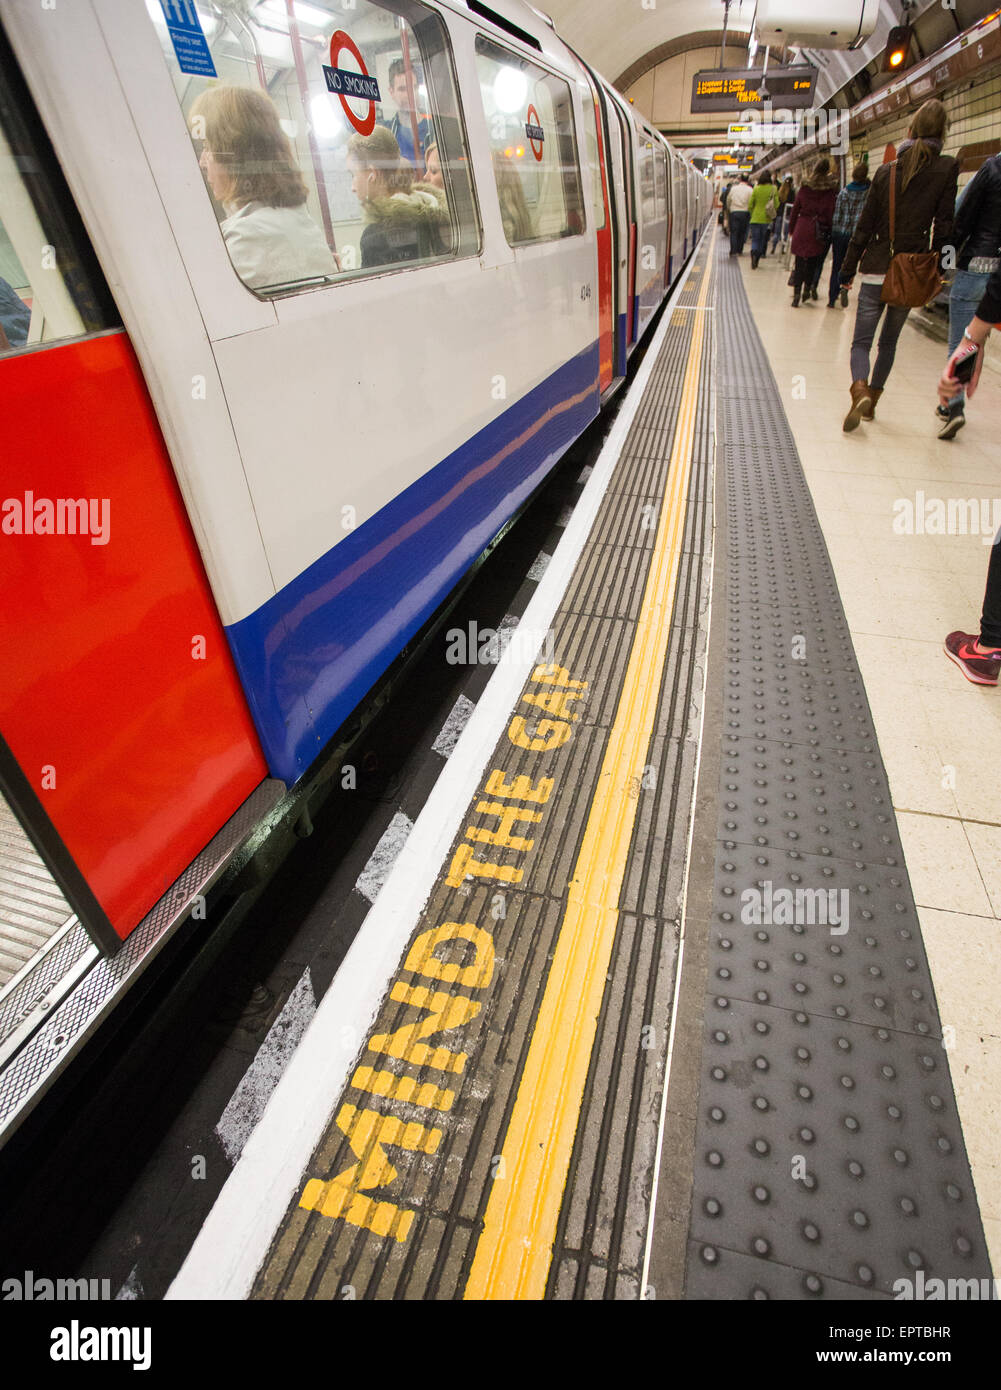 A Mind The Gap sign on the London Underground at a station in Britain Stock Photo